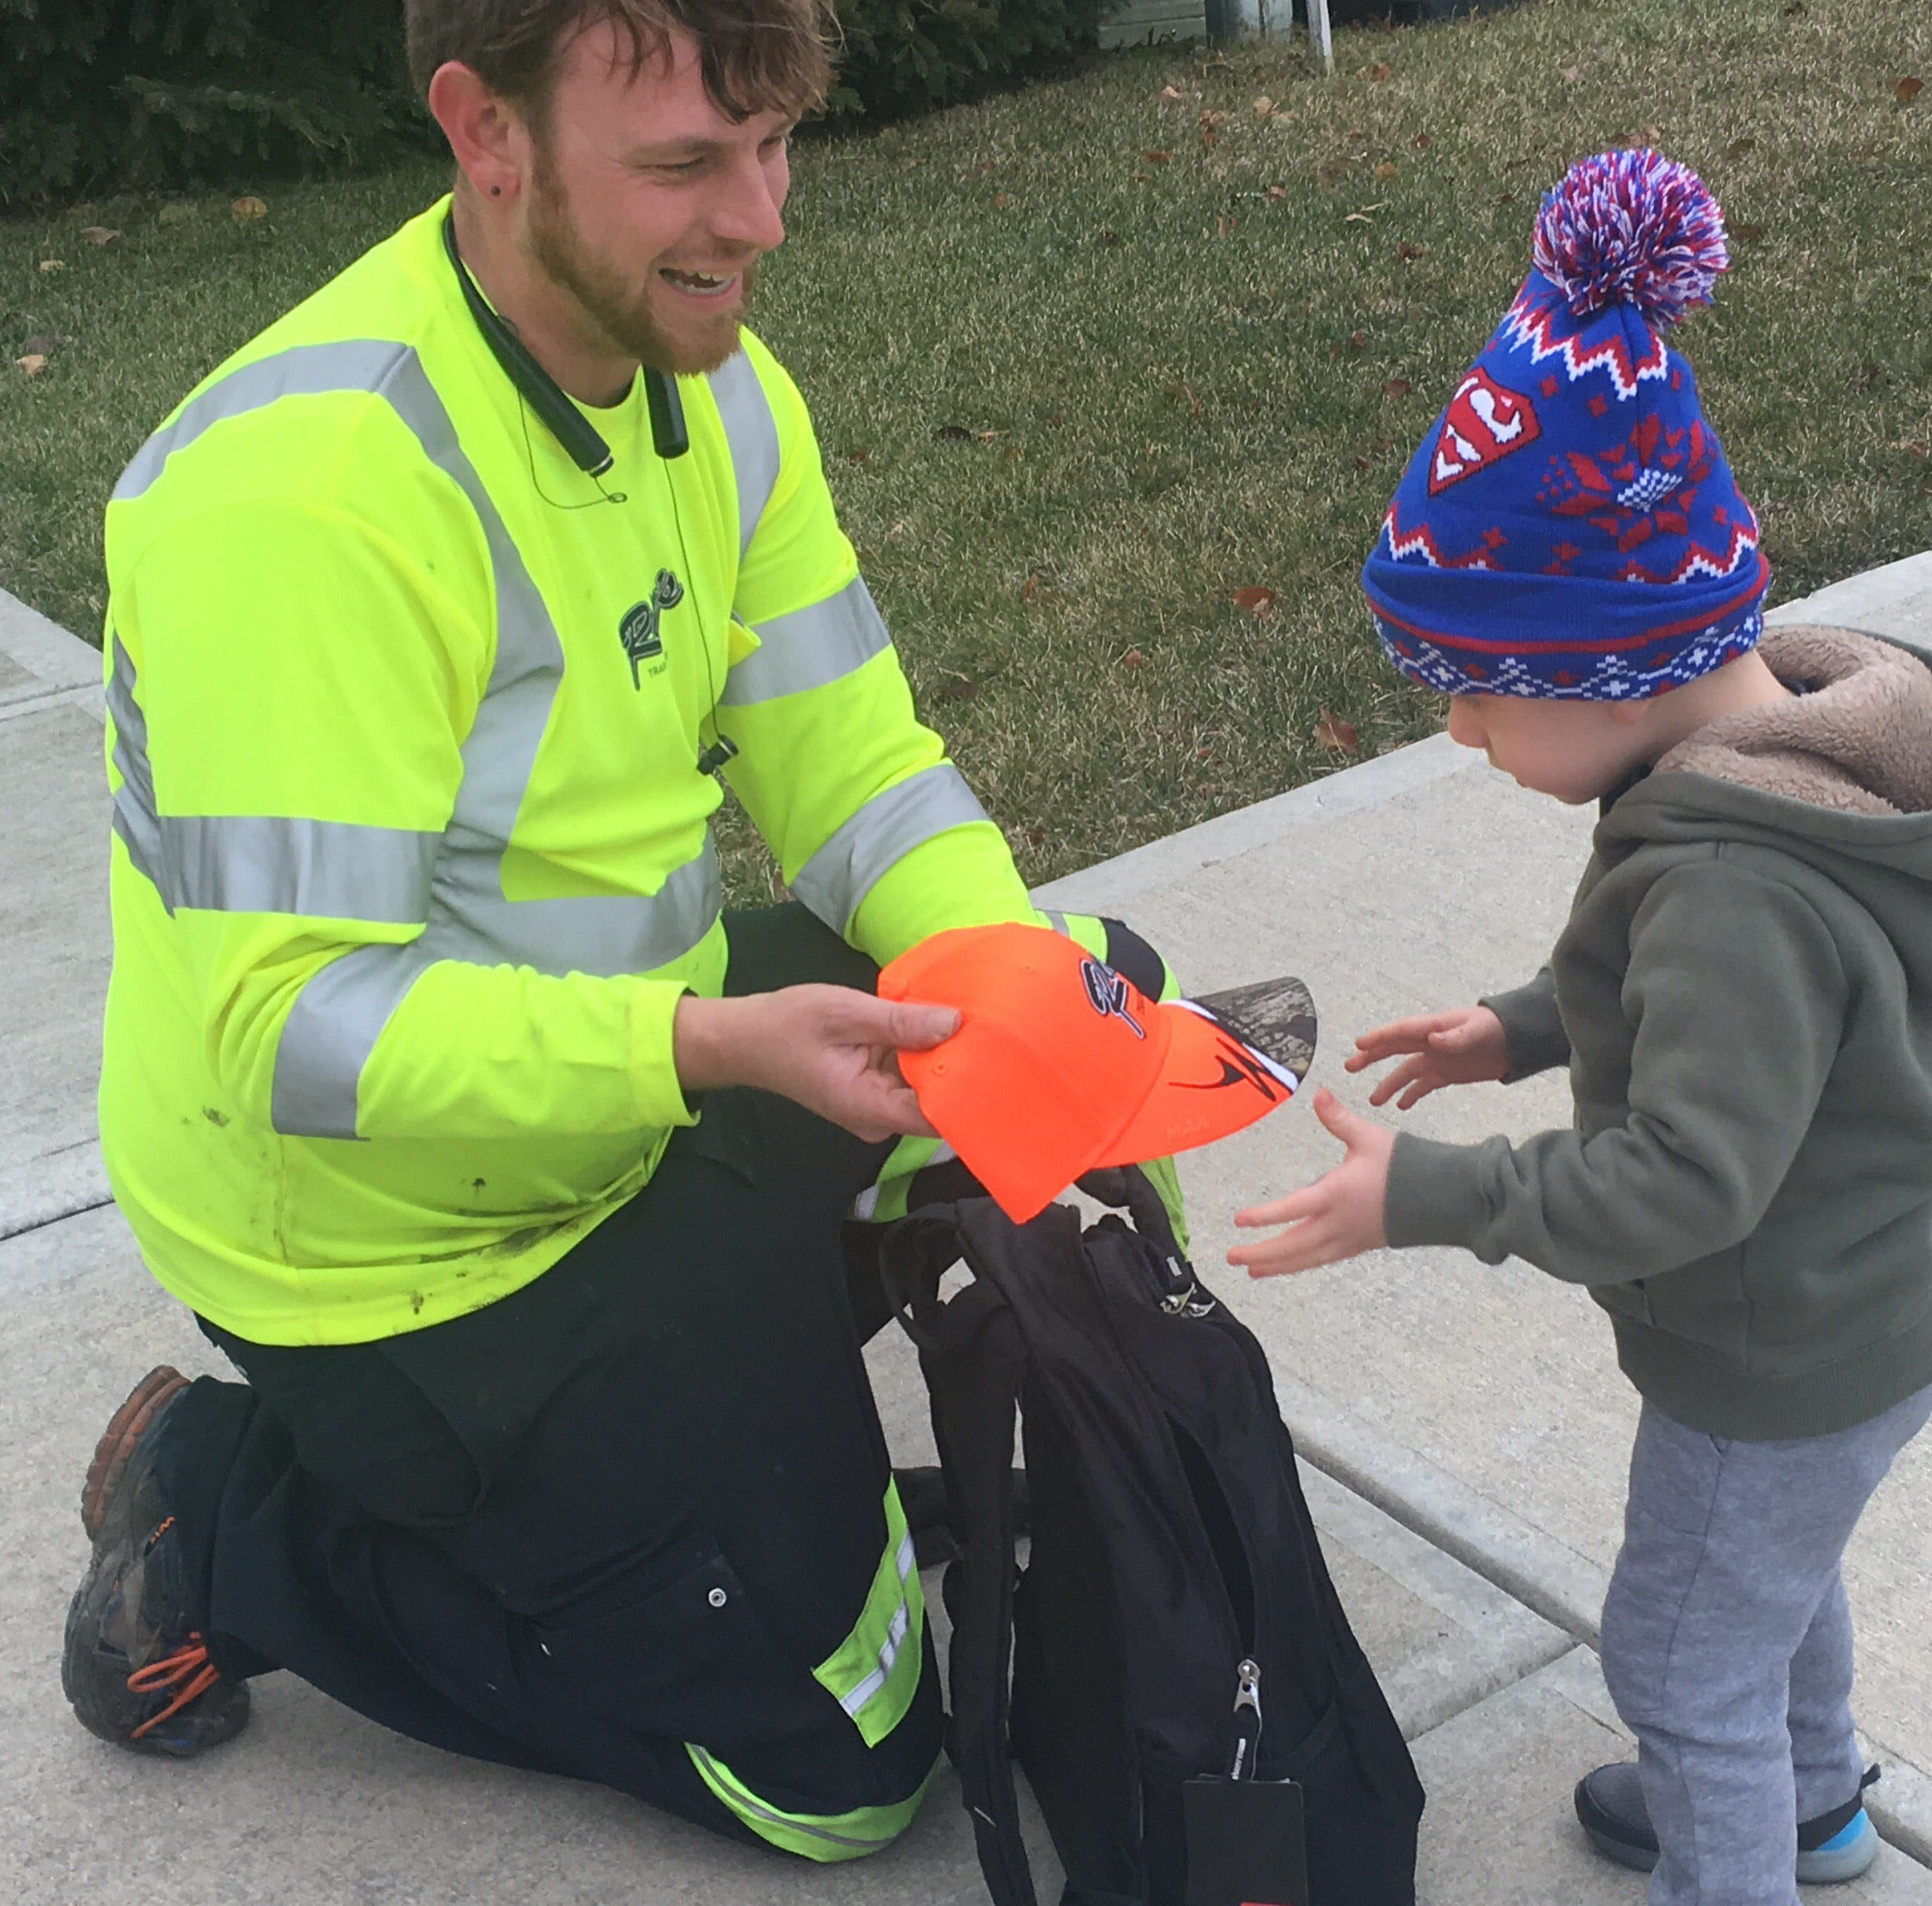 Ray's Trash Service driver surprises Plainfield toddler with backpack full of gifts